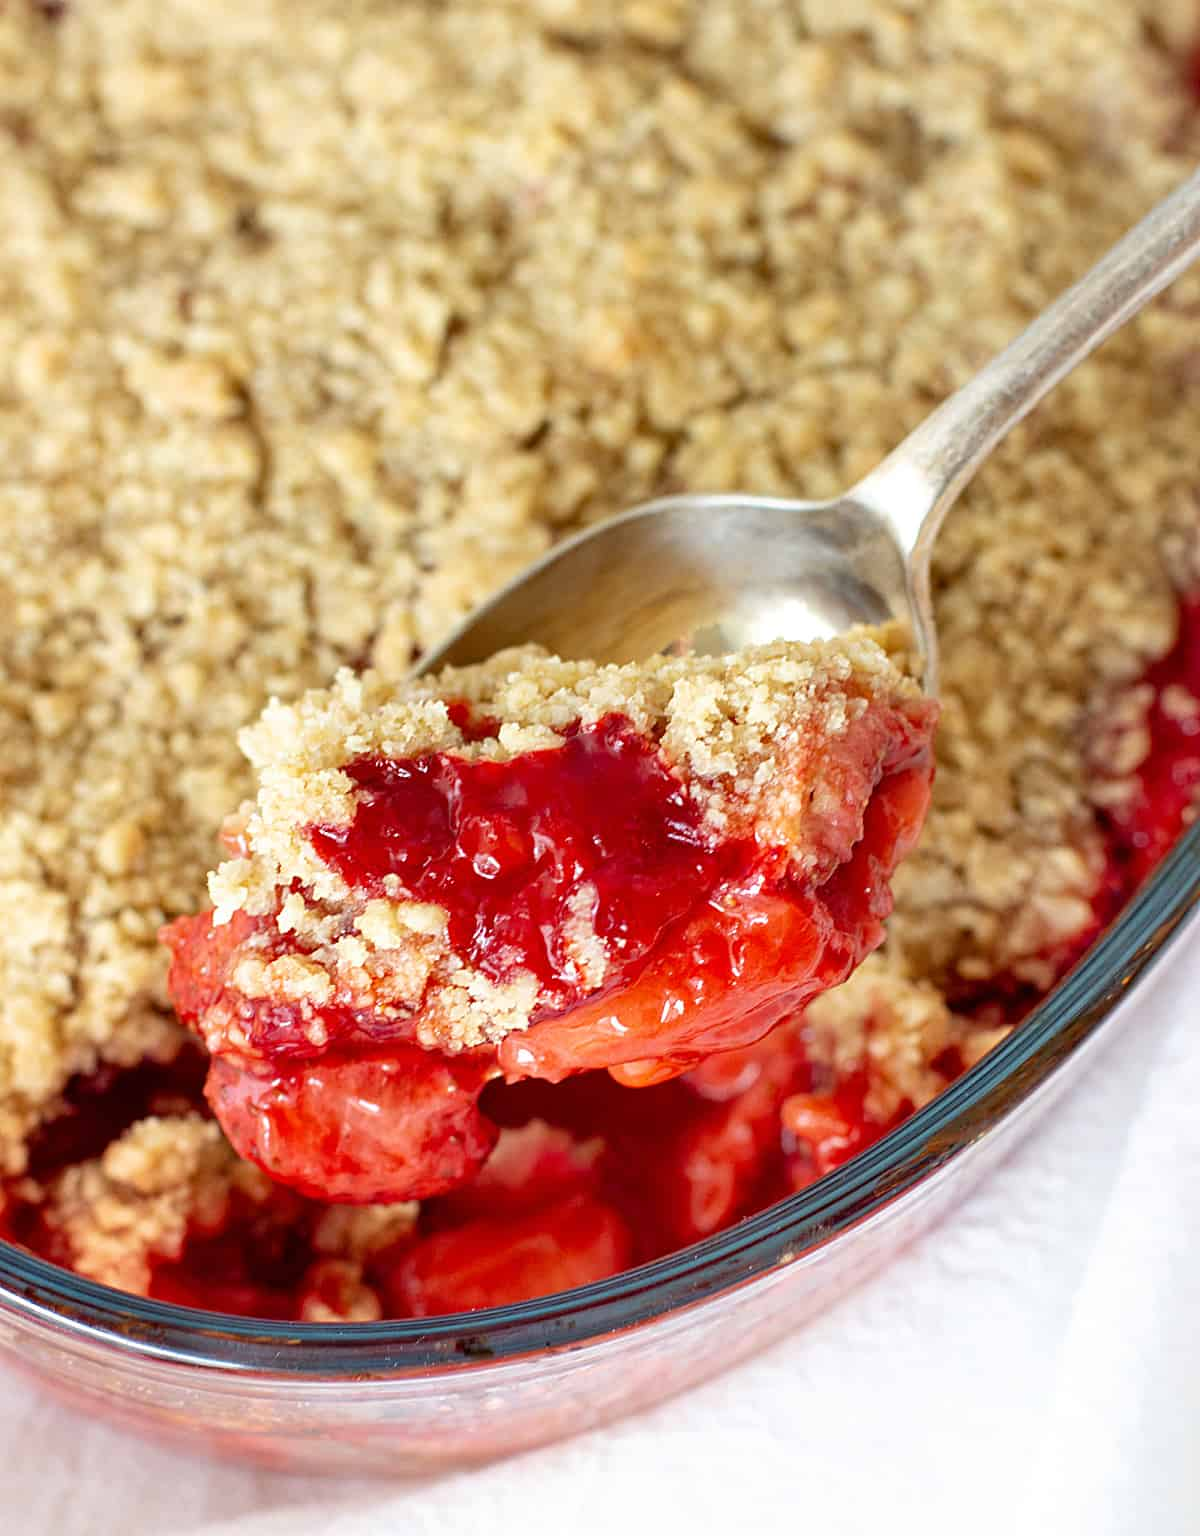 Lifting stawberry crisp portions with a silver spoon from glass dish